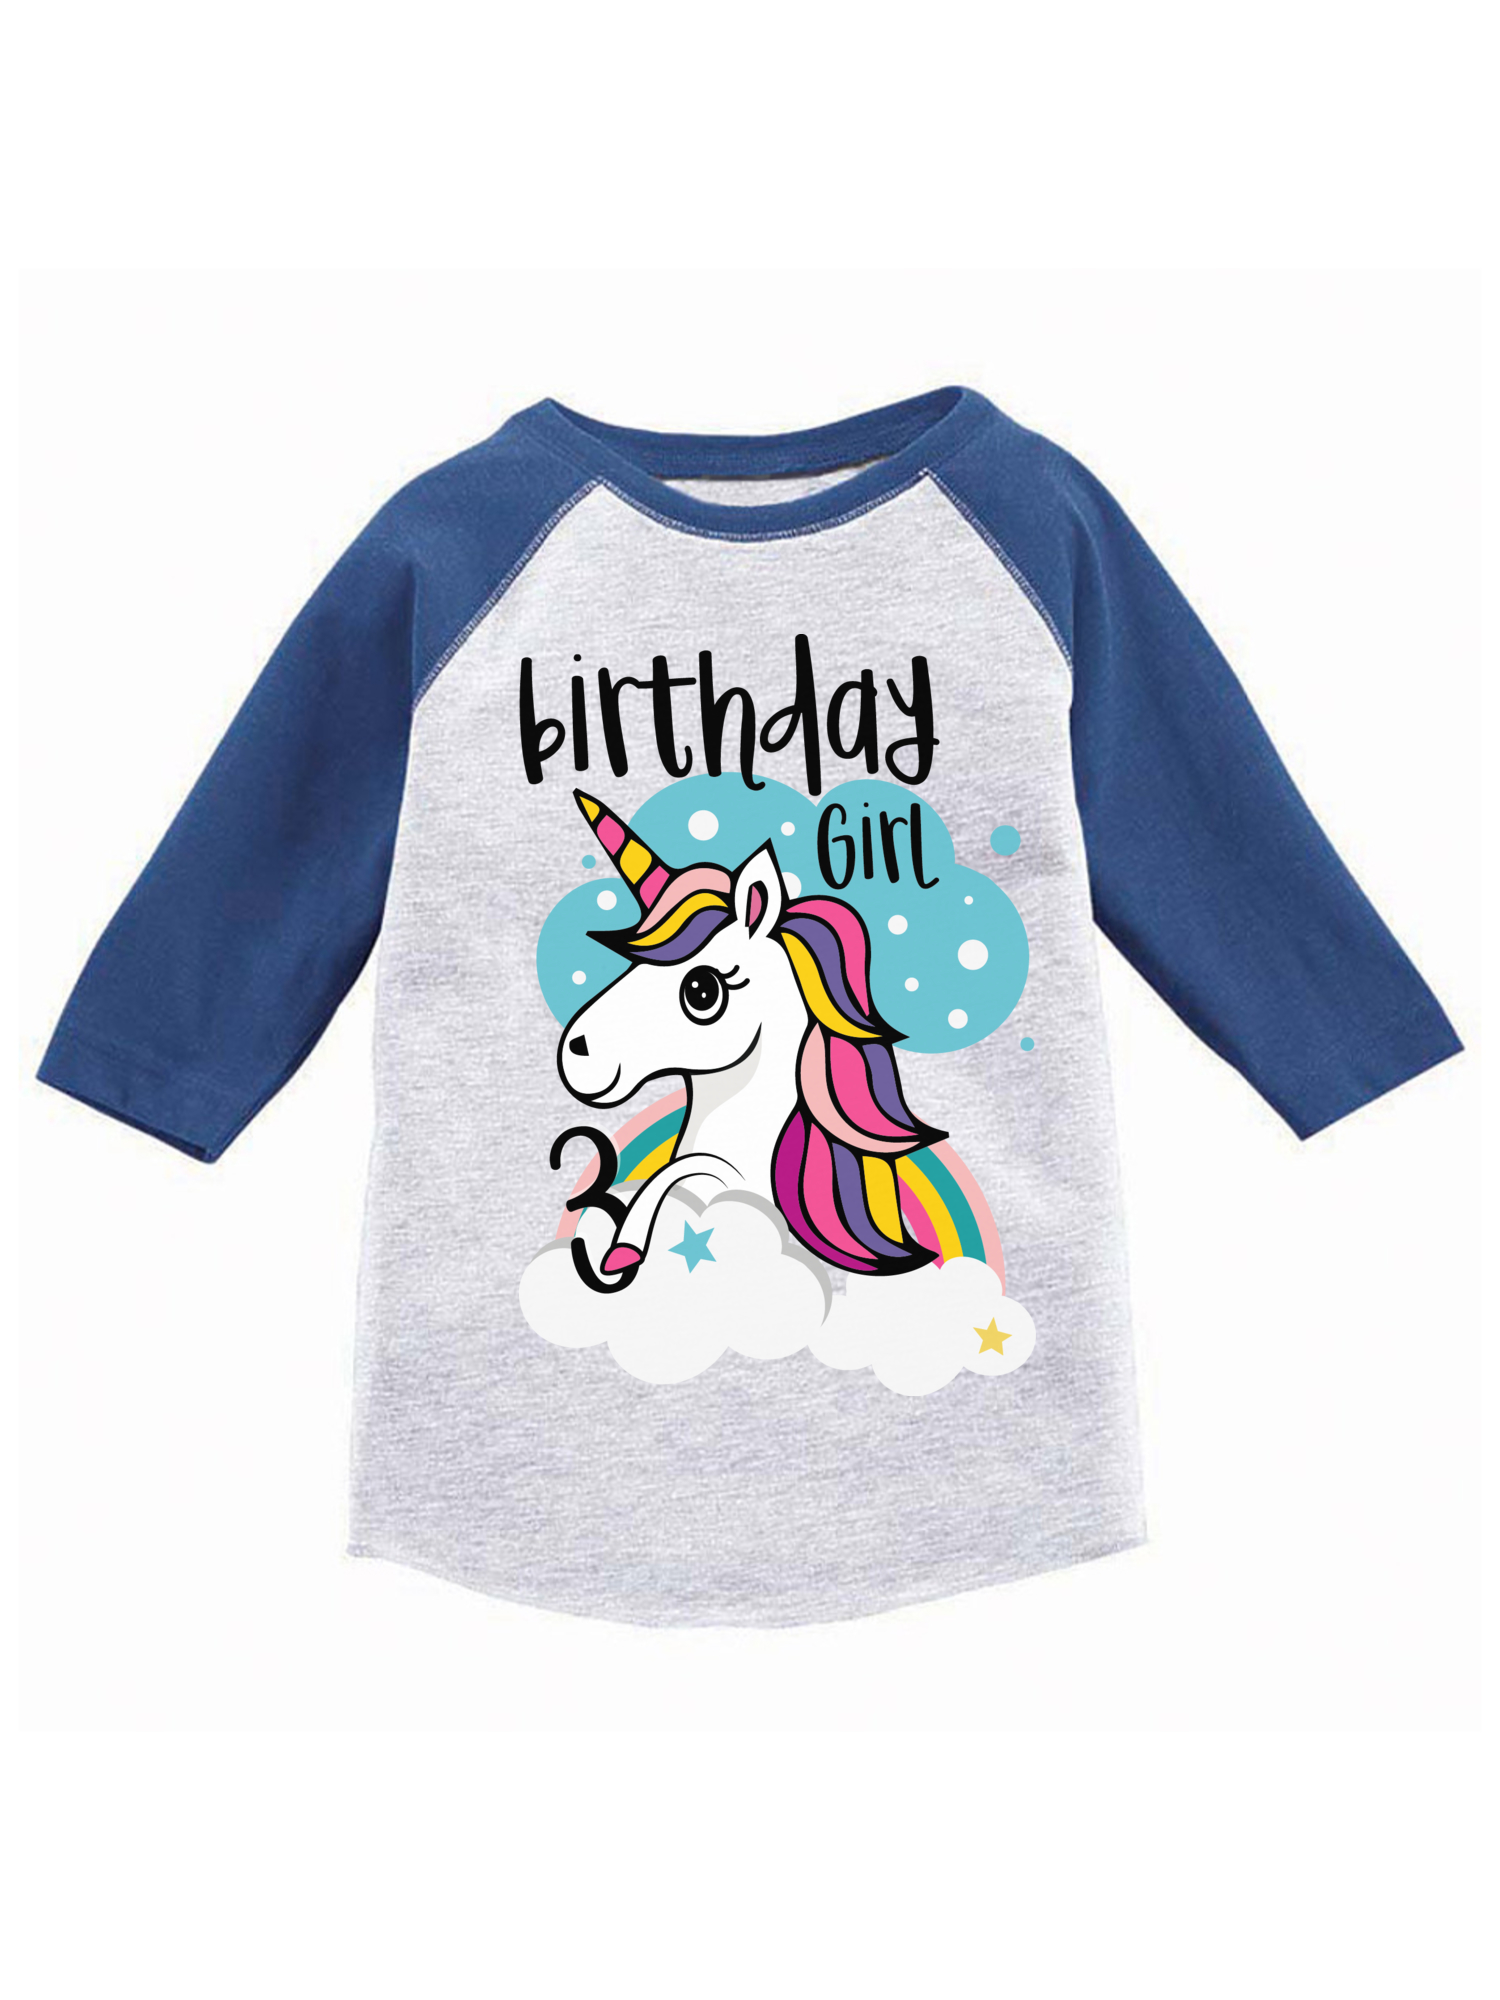 c541542fca Girls 3rd Birthday Toddler T-Shirts - CafePress